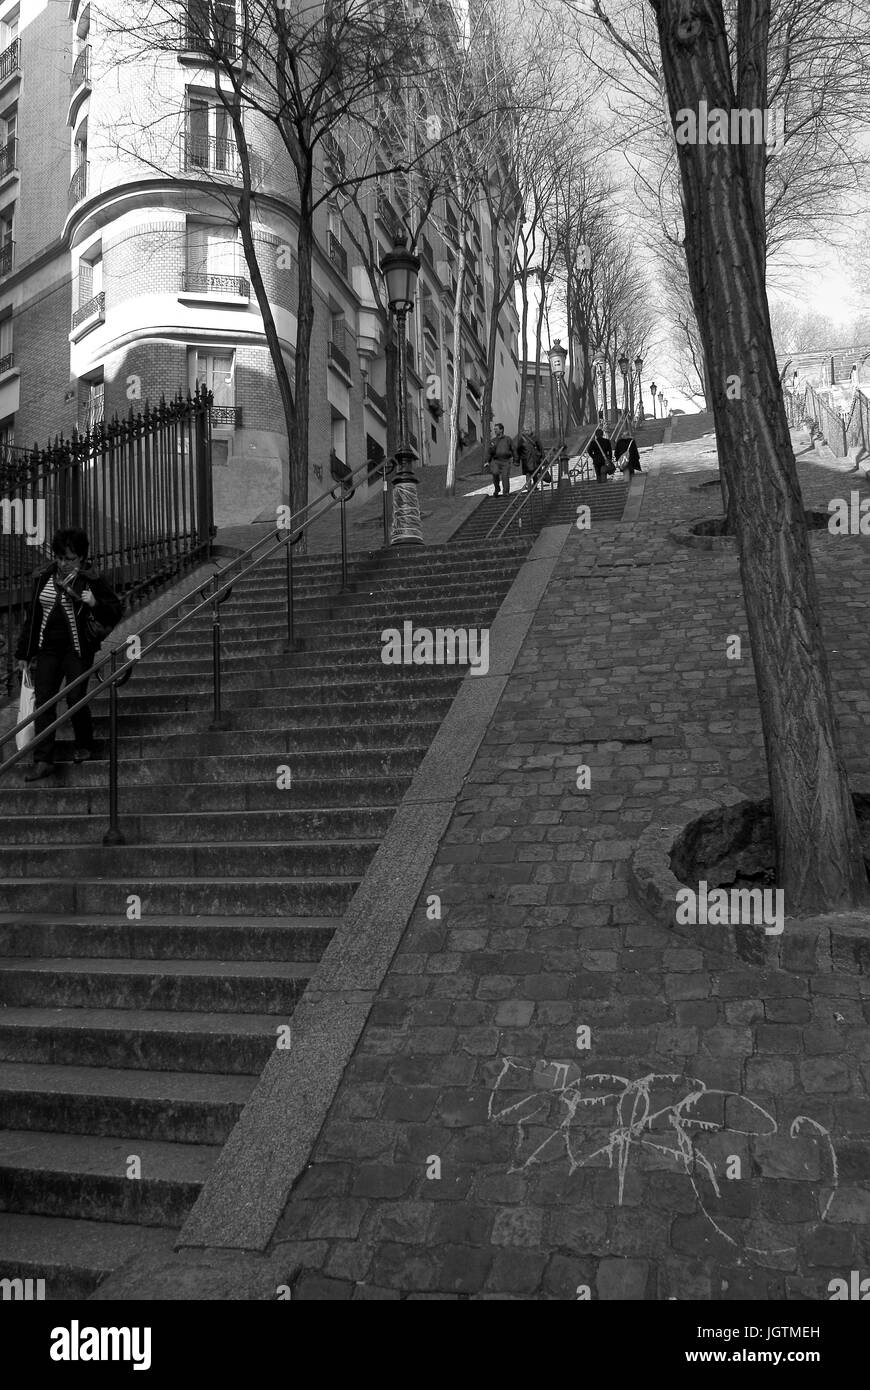 La Butte Montmarte, 18° arrondissement, Ile-de-France, France - Stock Image